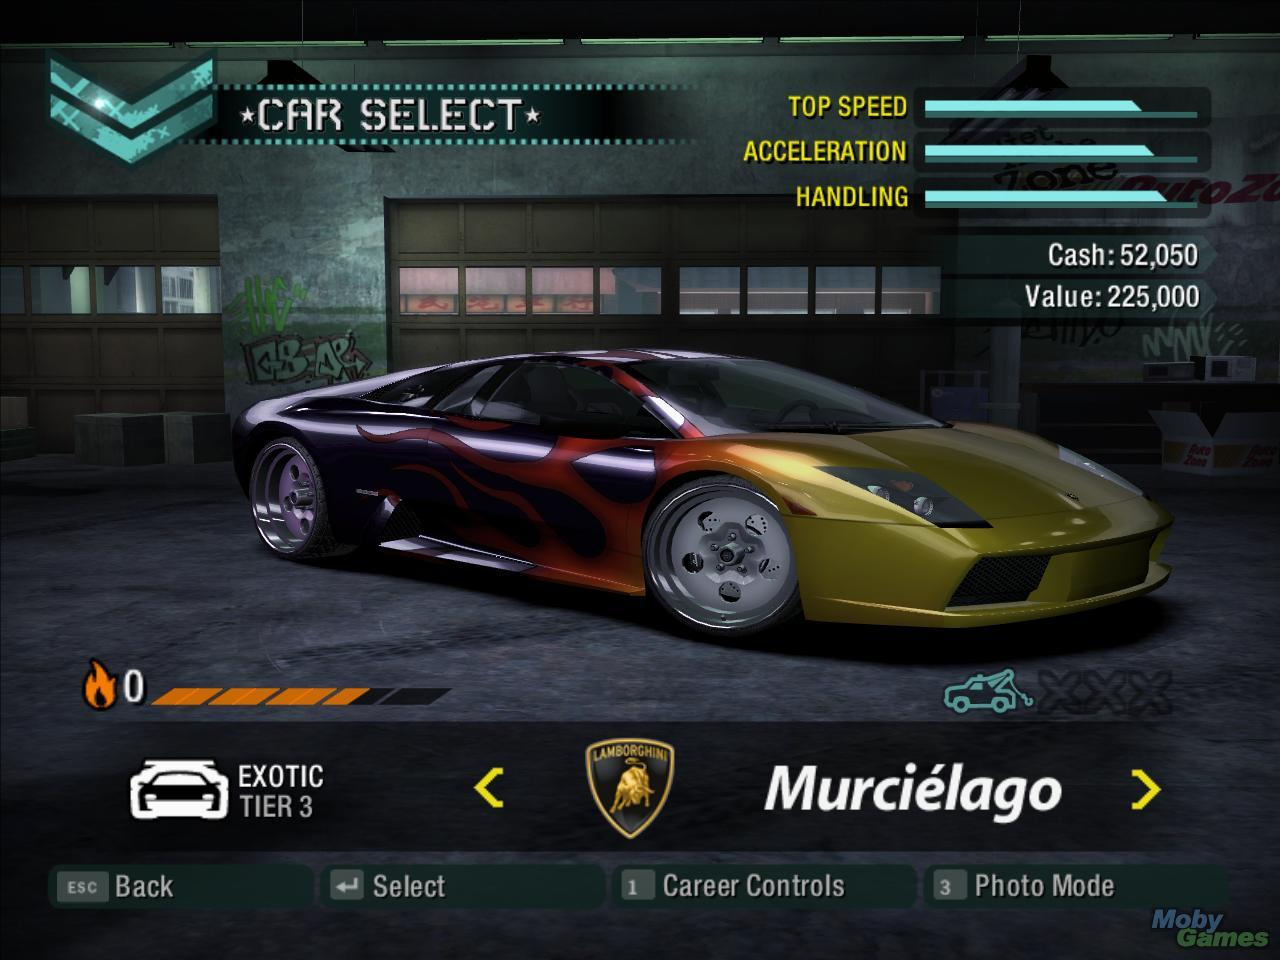 Download Game: Need for Speed: Carbon Detected platform: PC Aliases: Carbon,